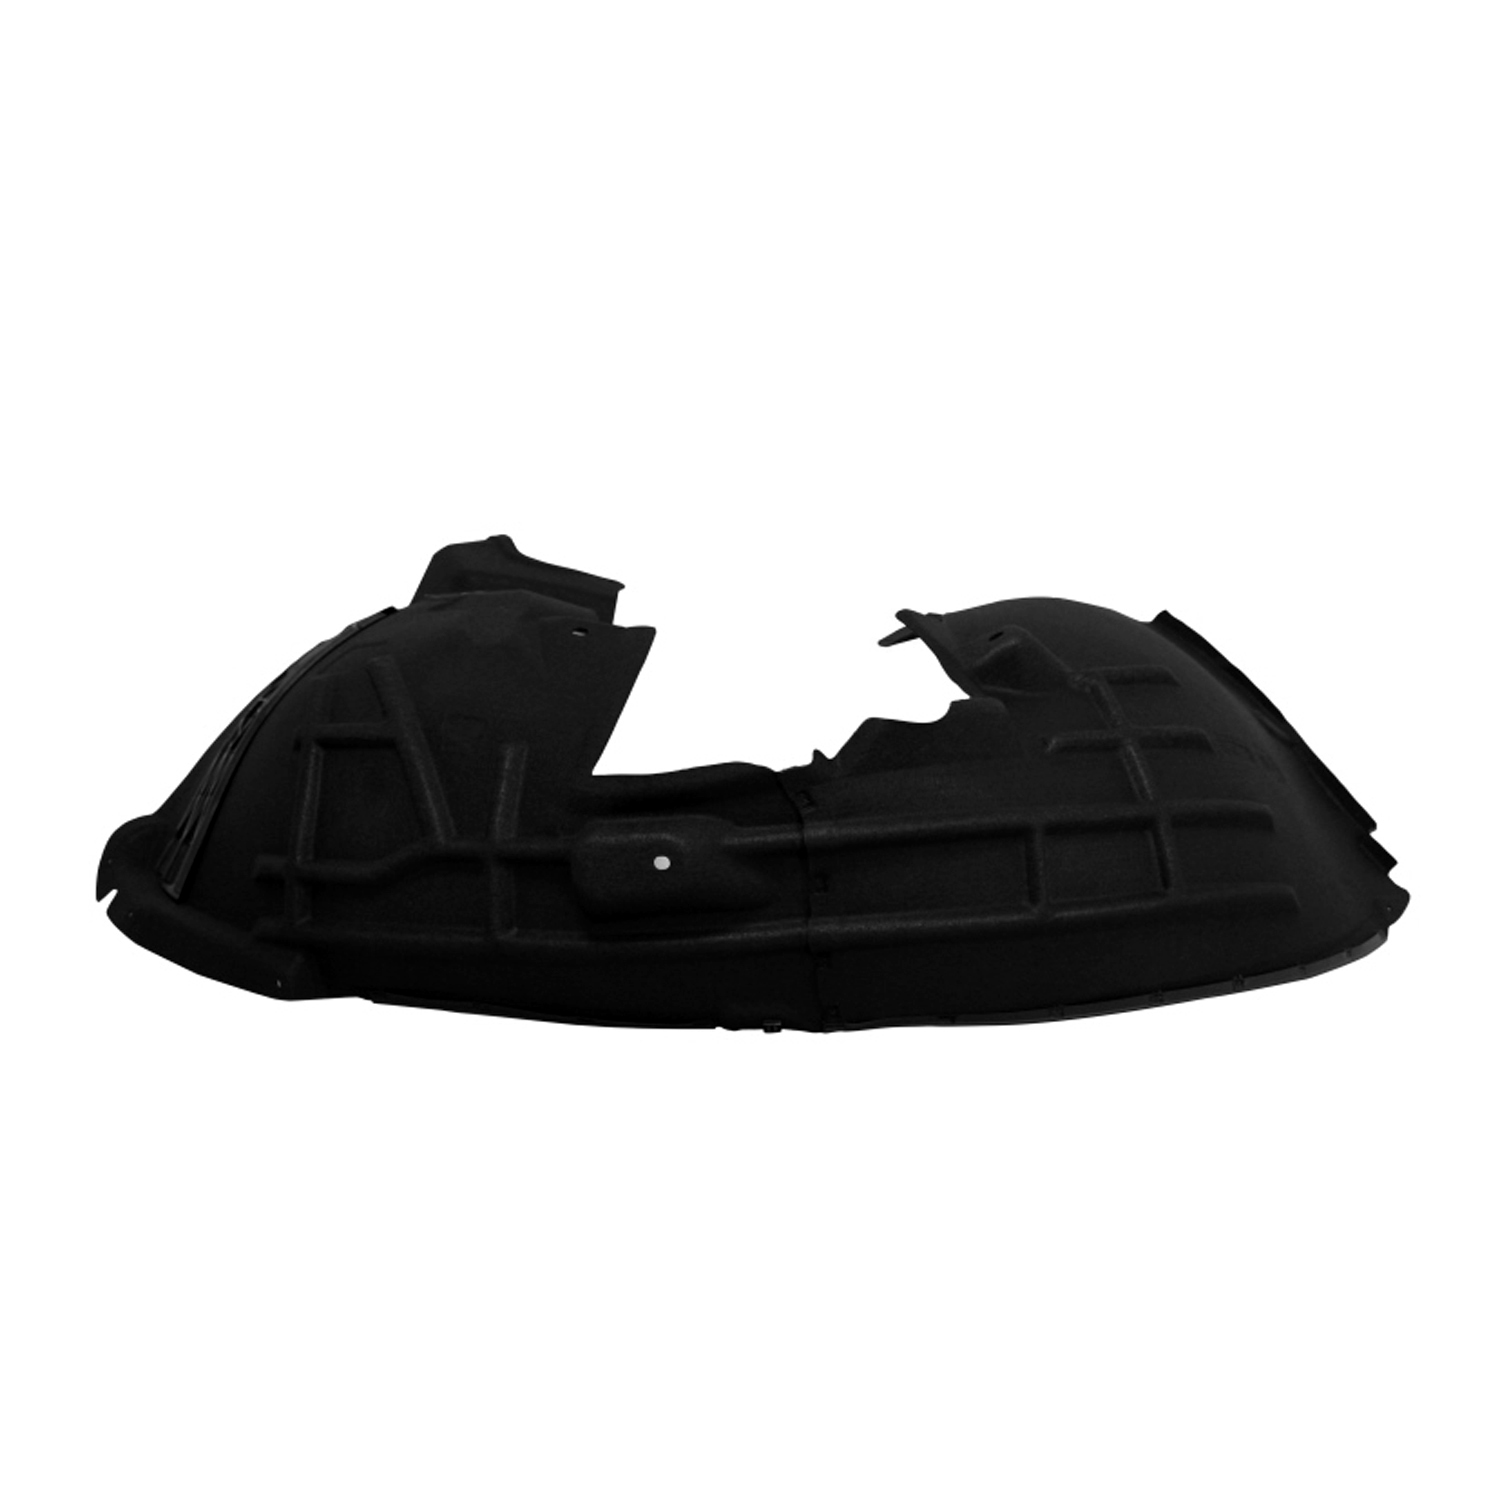 AUDI Q5 2009-2017 FRONT WING RH RIGHT DRIVERS SIDE OFF-SIDE NEW